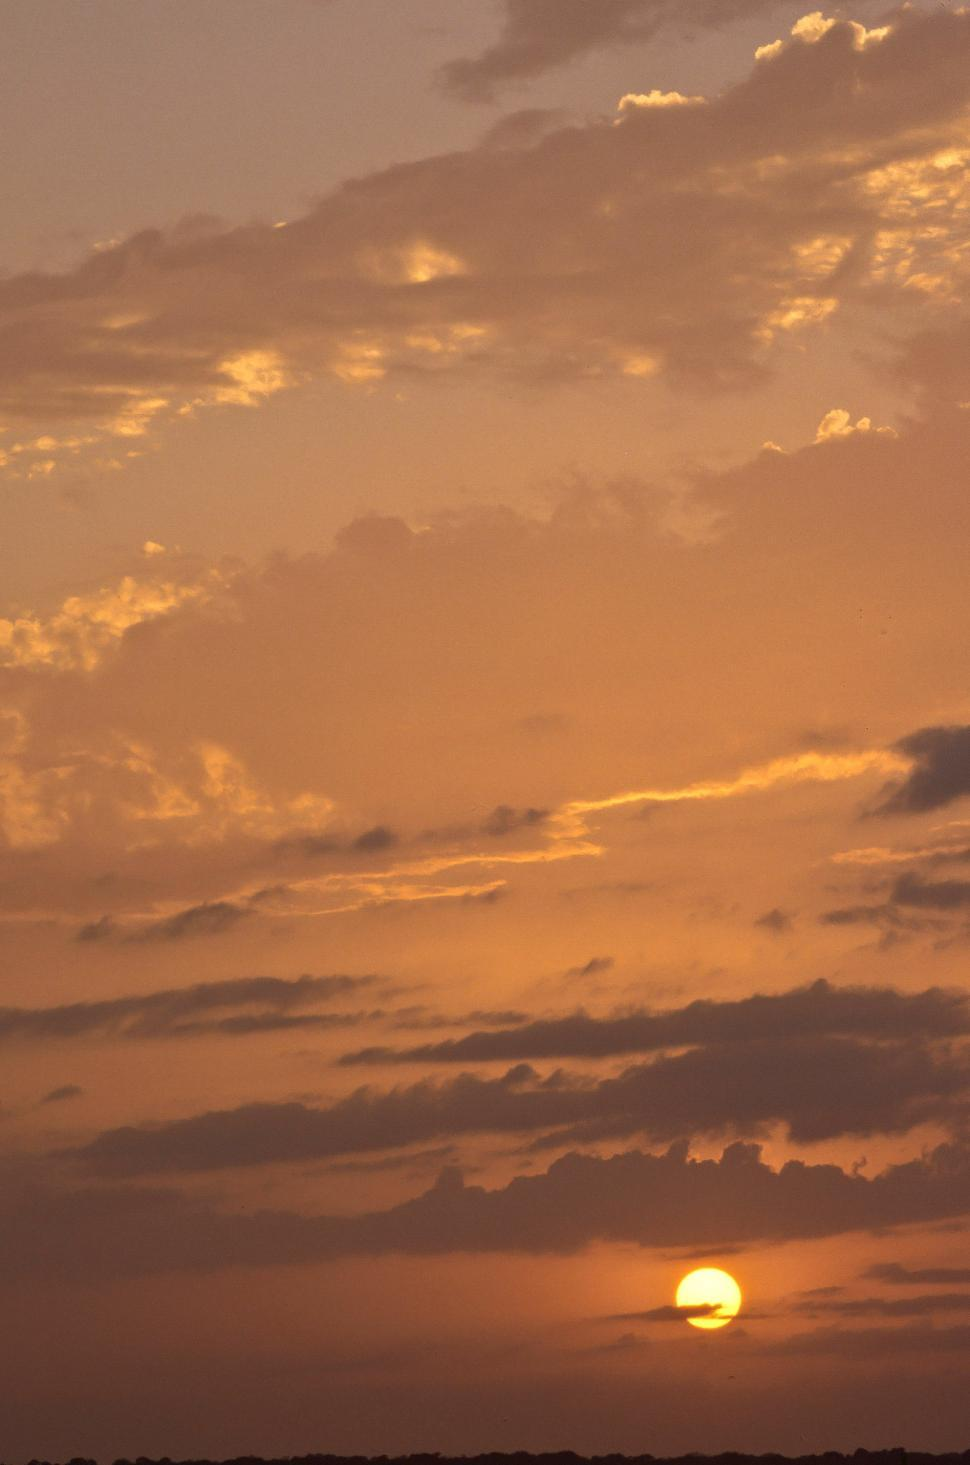 Free image of A cloudy golden sunset sky at Sebastian Inlet.